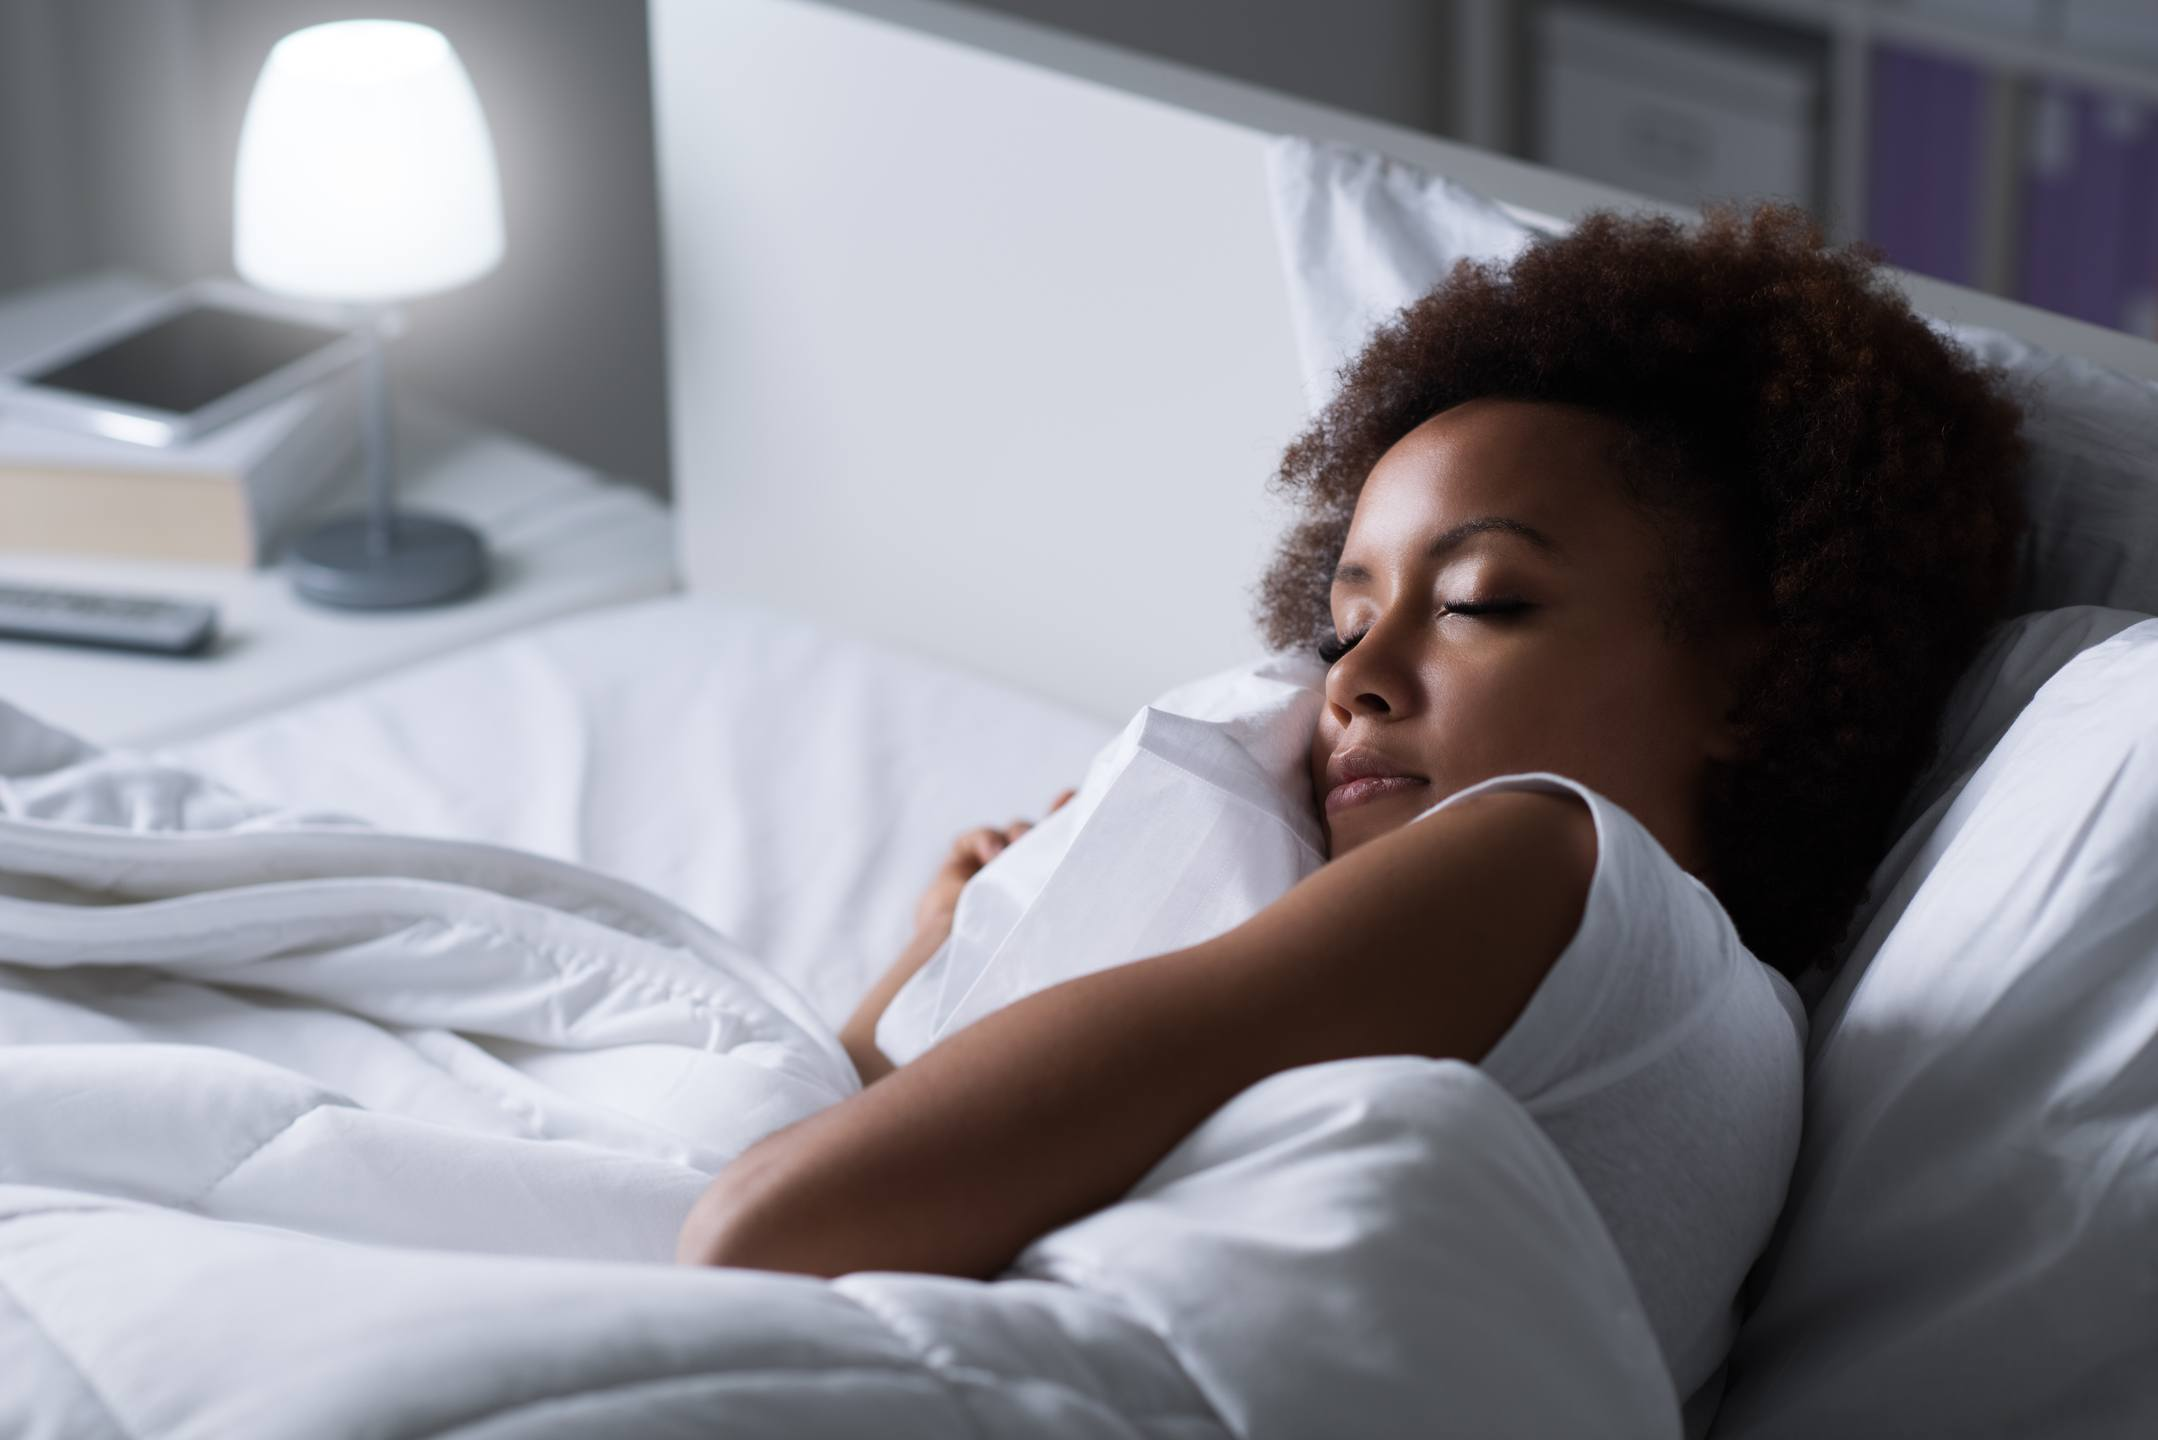 An increasing body of research supports using CBD for sleep and insomnia treatment. Photo: A dark-skinned woman sleeps on a bed with white sheets, while a light shines on a nightstand.